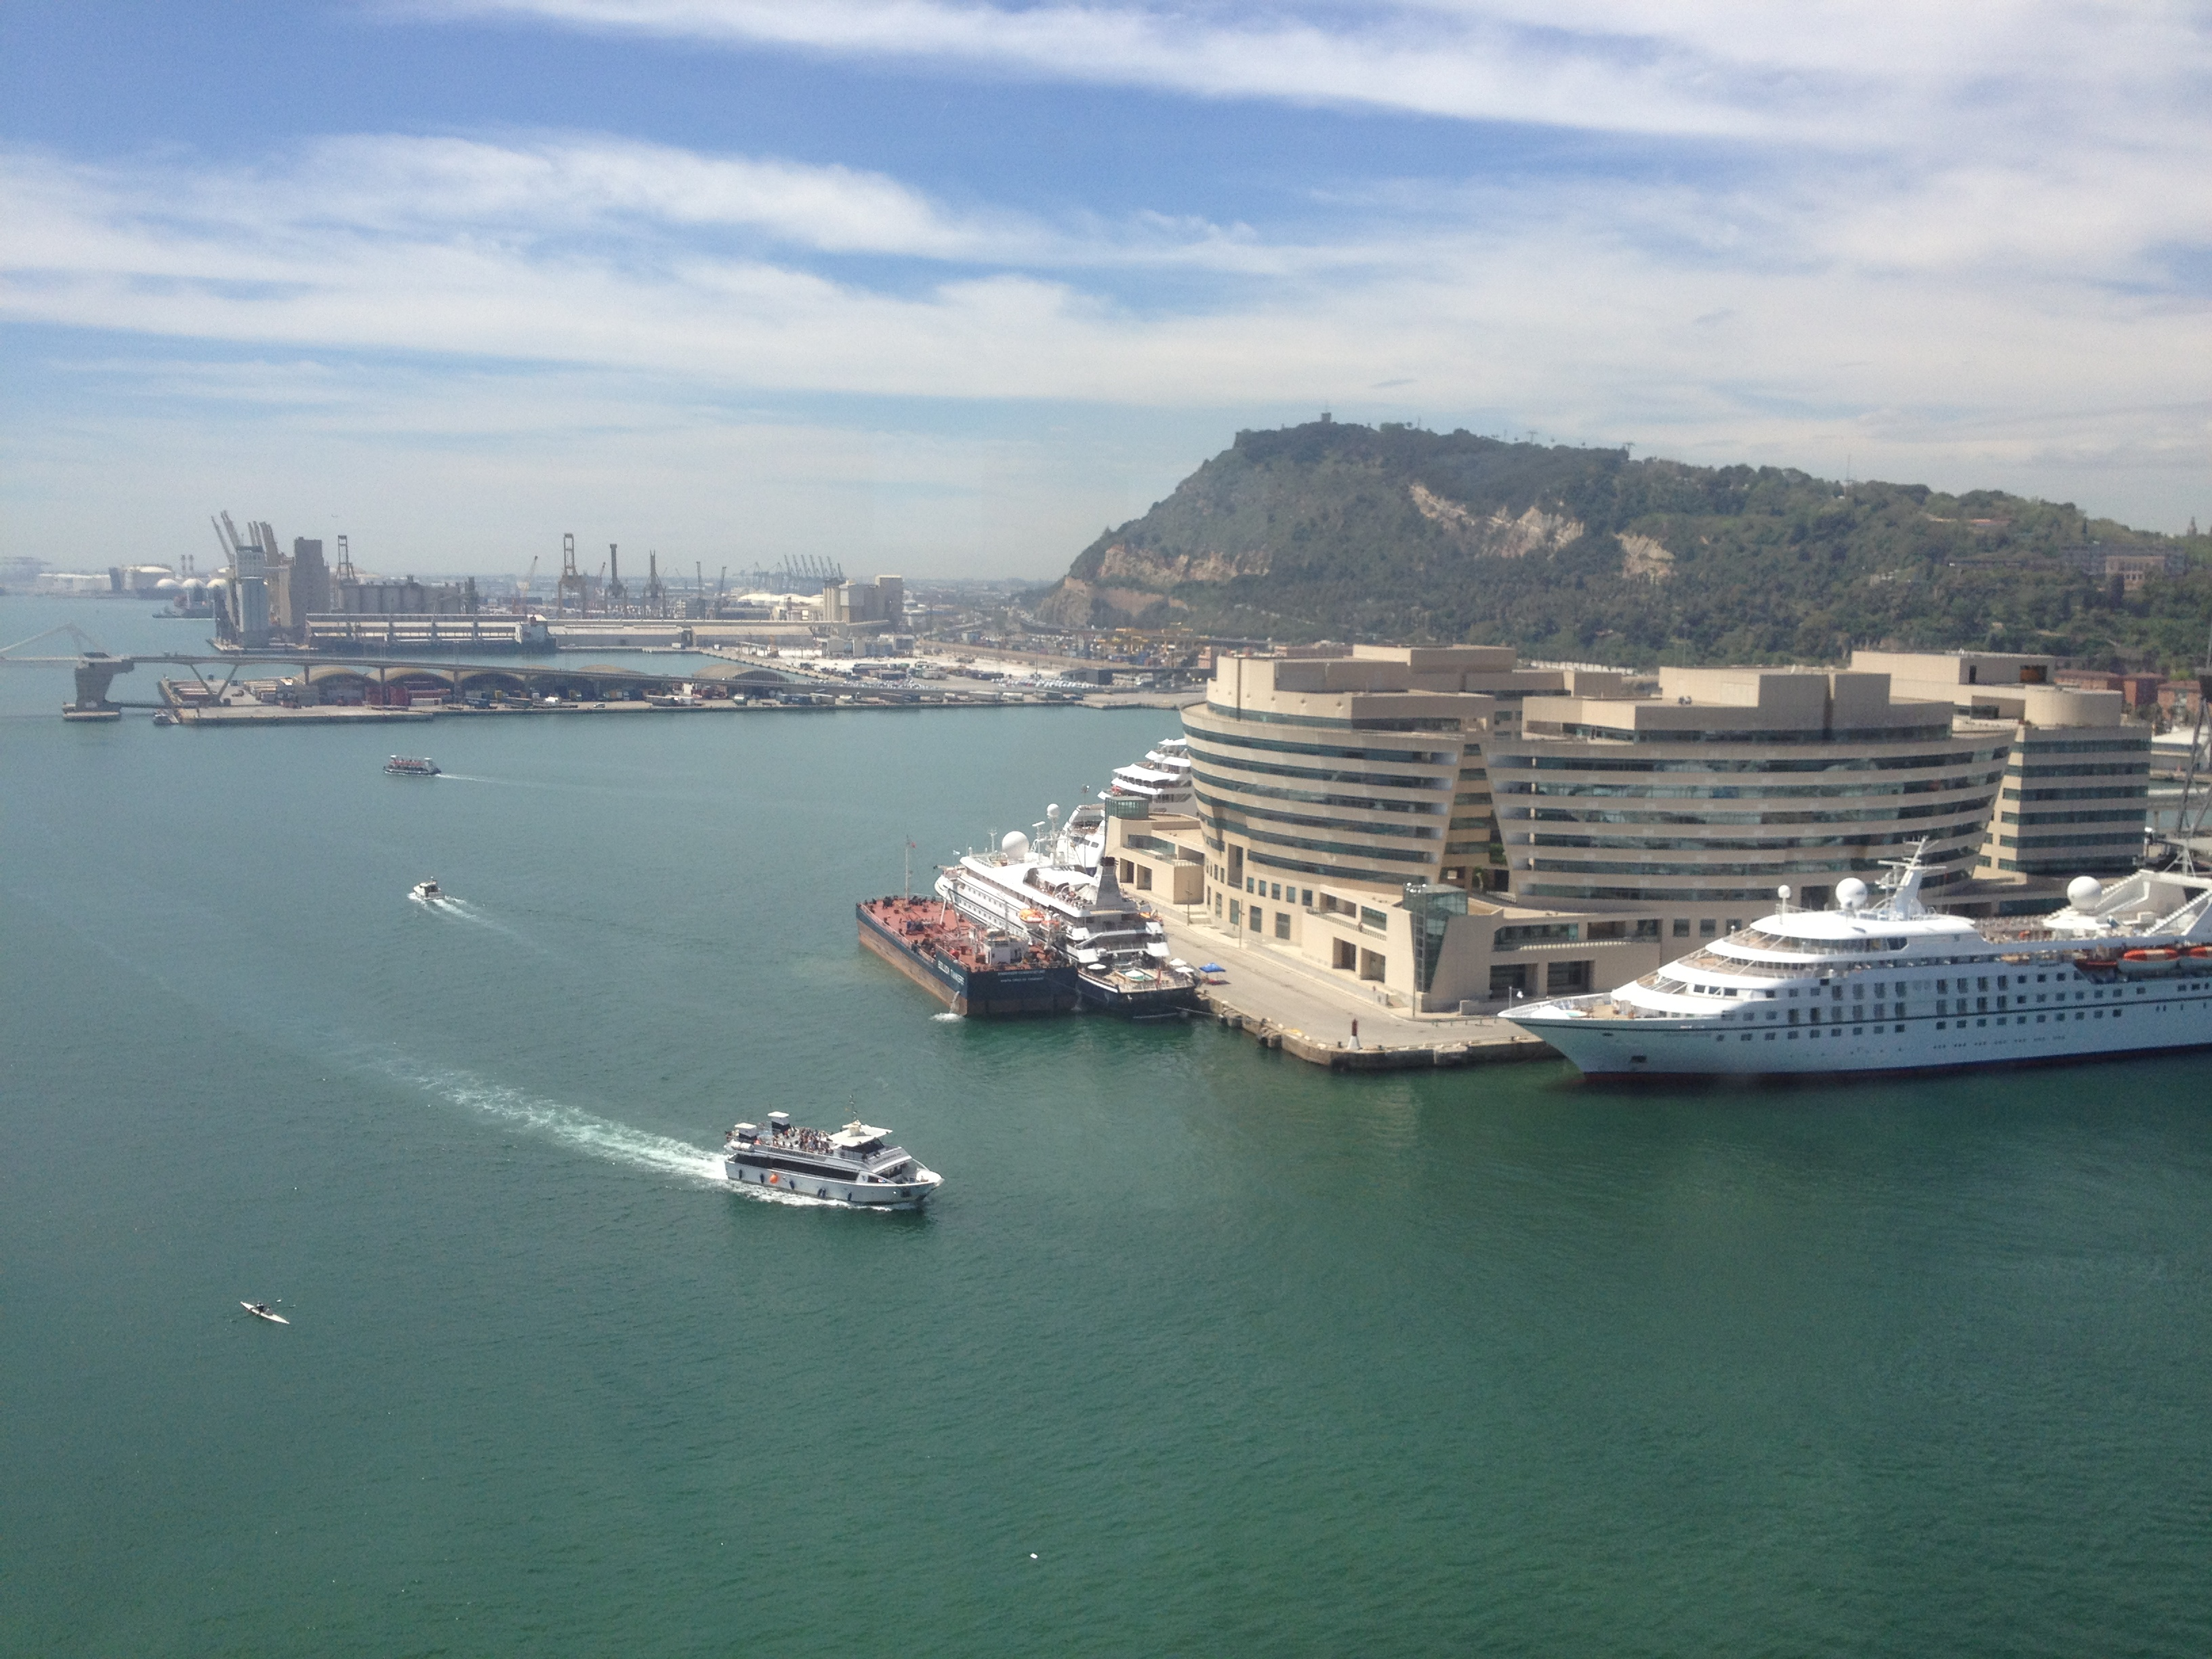 View of boats from Barcelona aerial tram